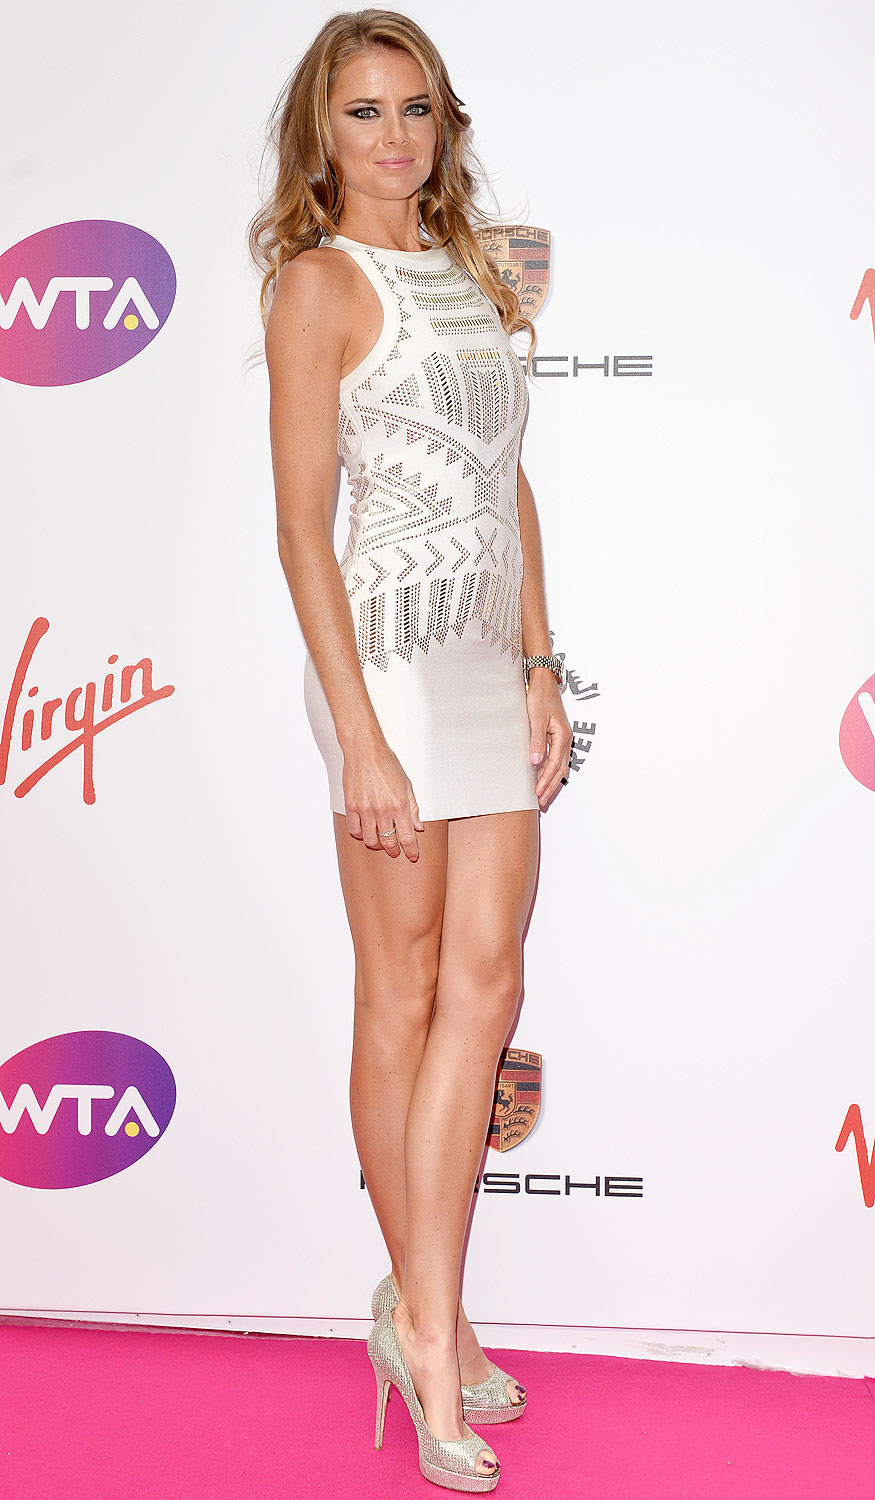 Daniela Hantuchova: Hantuchova. Mini-dress. Check.